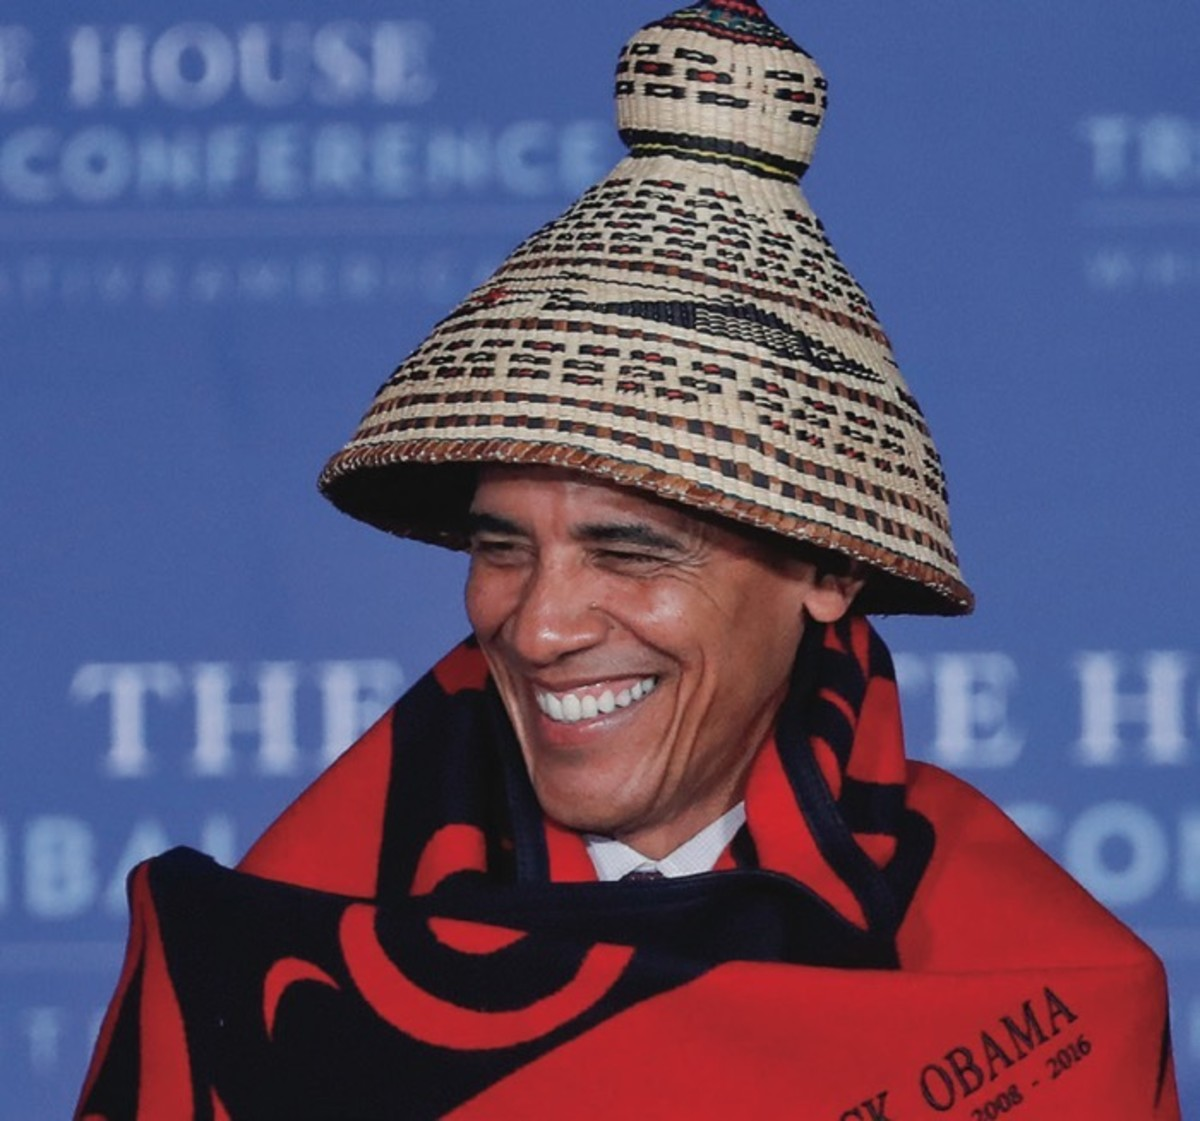 President Barack Obama smiles as he wears a ceremonial blanket and cedar basket twined hat given to him by Brian Cladoosby, President of National Congress of American Indians, at the 2016 White House Tribal Nations Conference, Monday, Sept. 26, 2016, at the Mellon Auditorium in Washington.